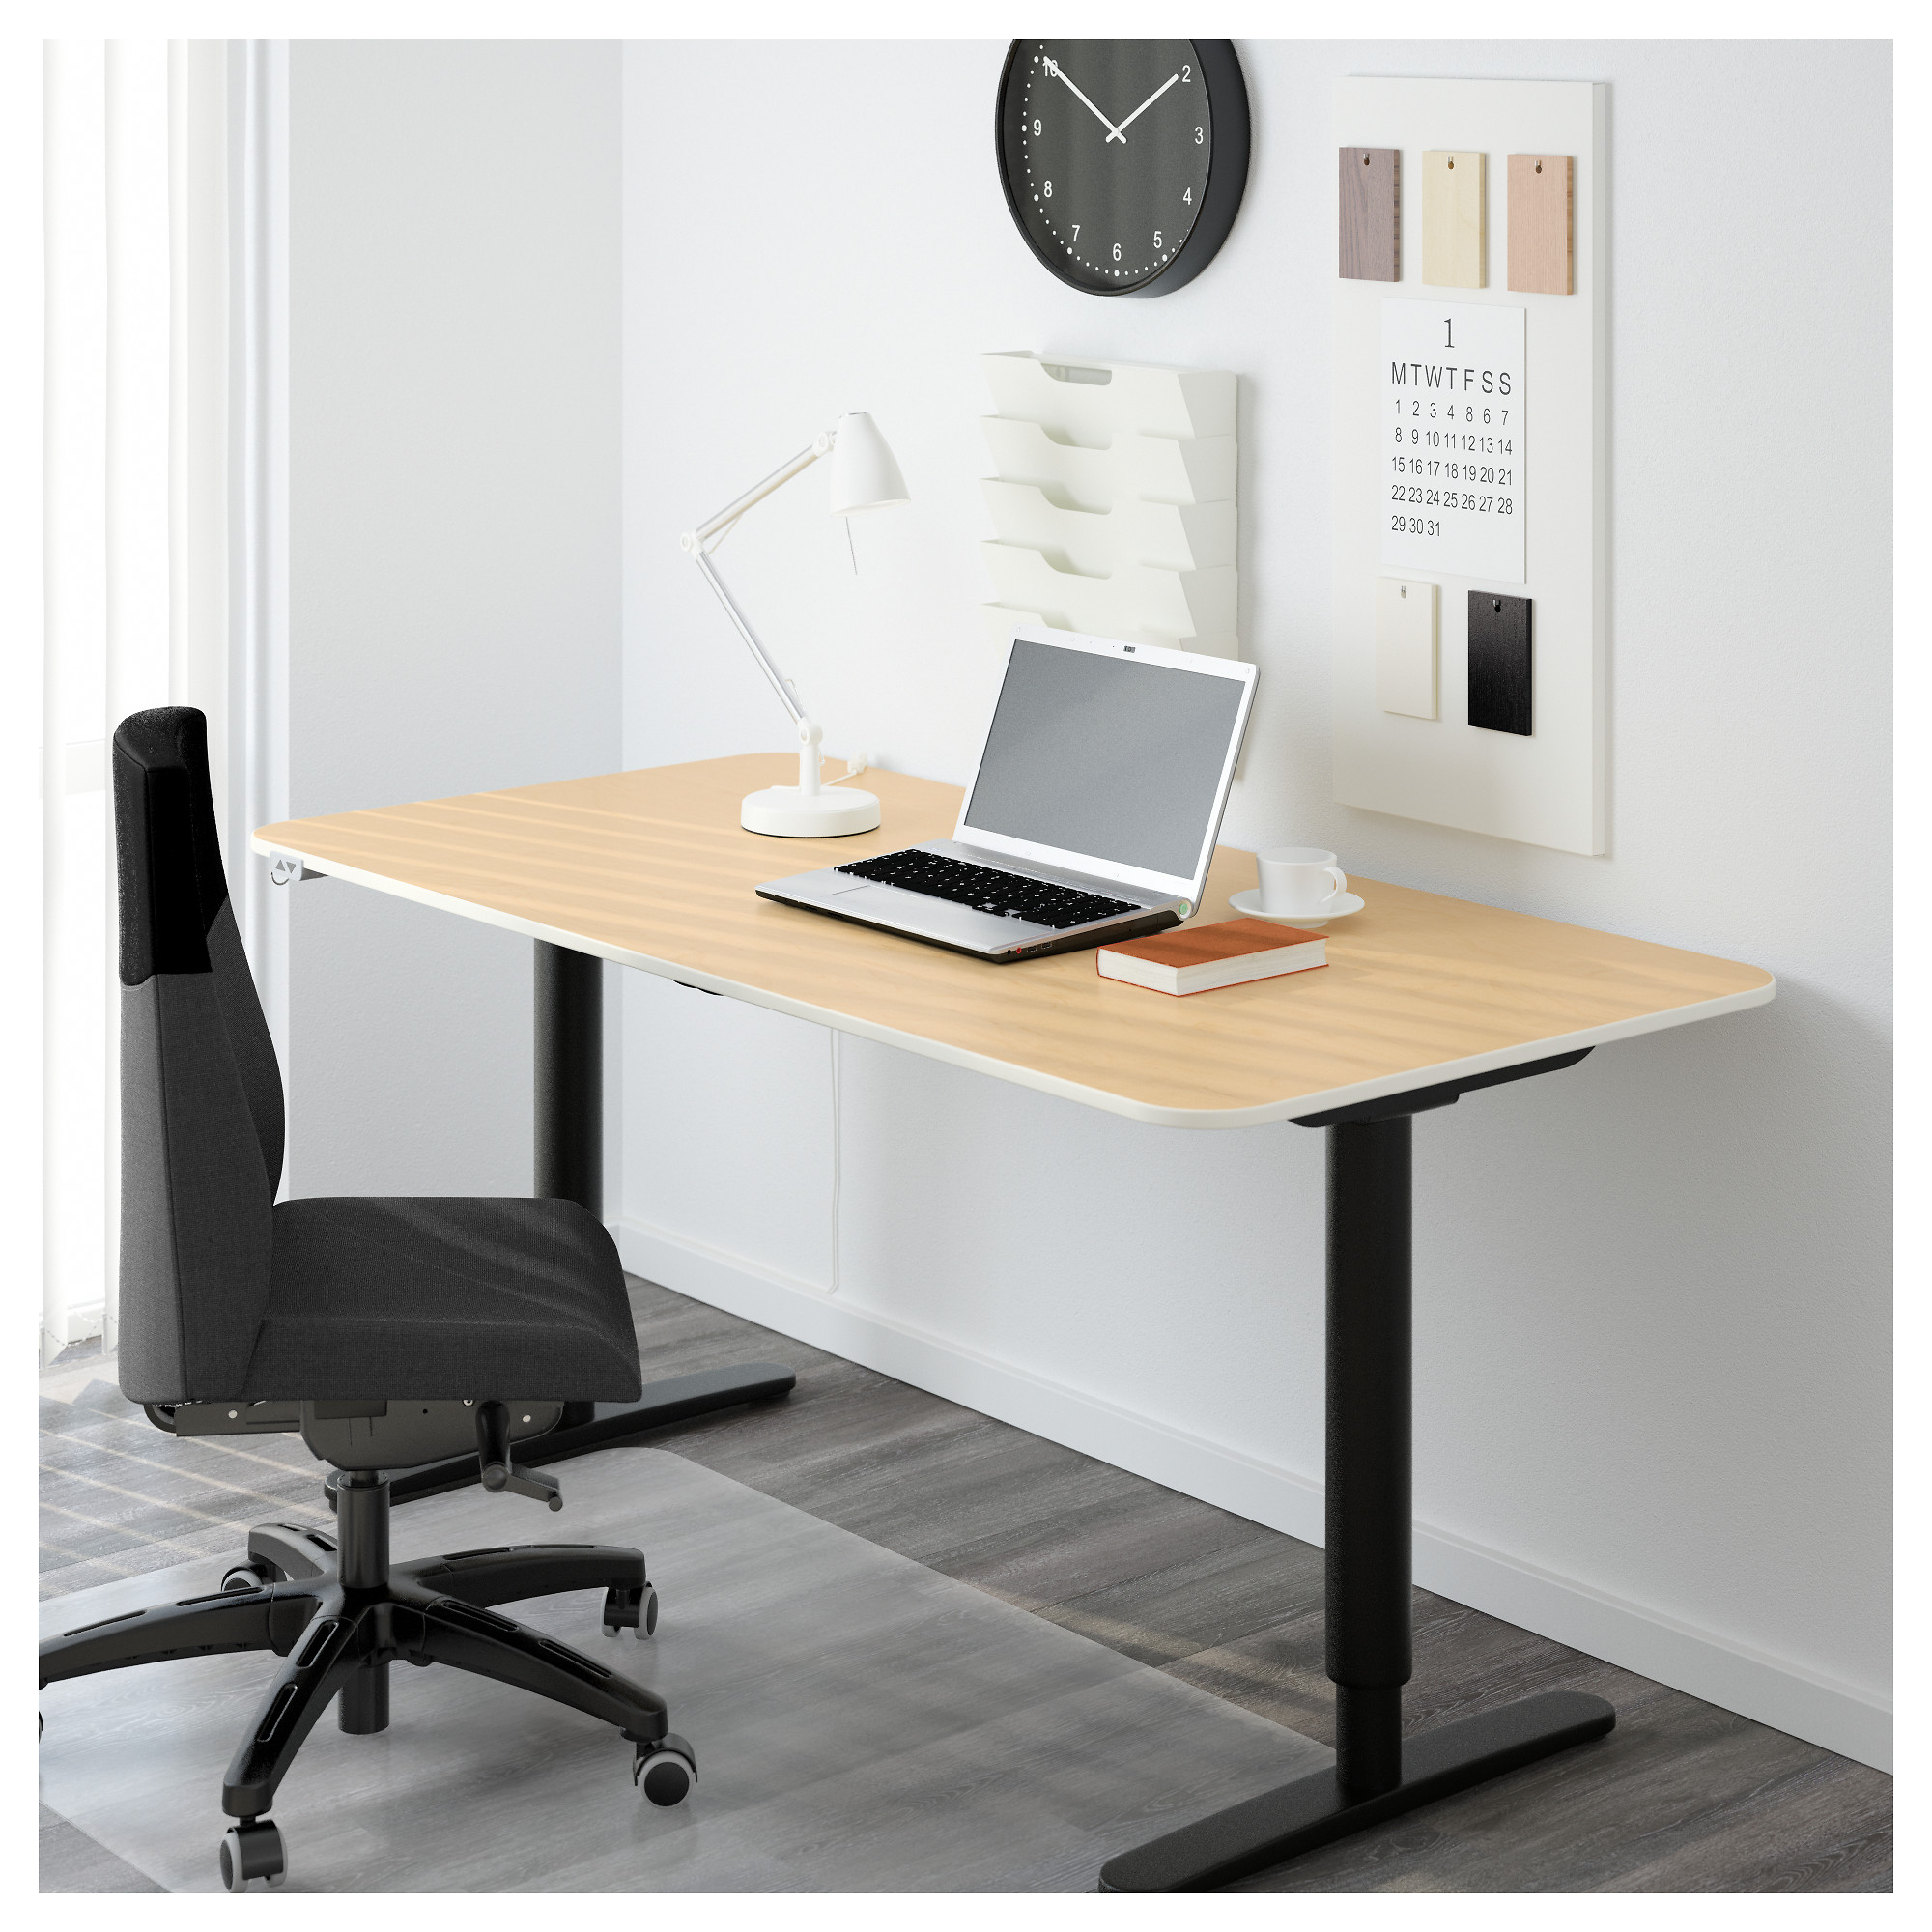 BEKANT Desk Sit/stand   Black Brown/white   IKEA